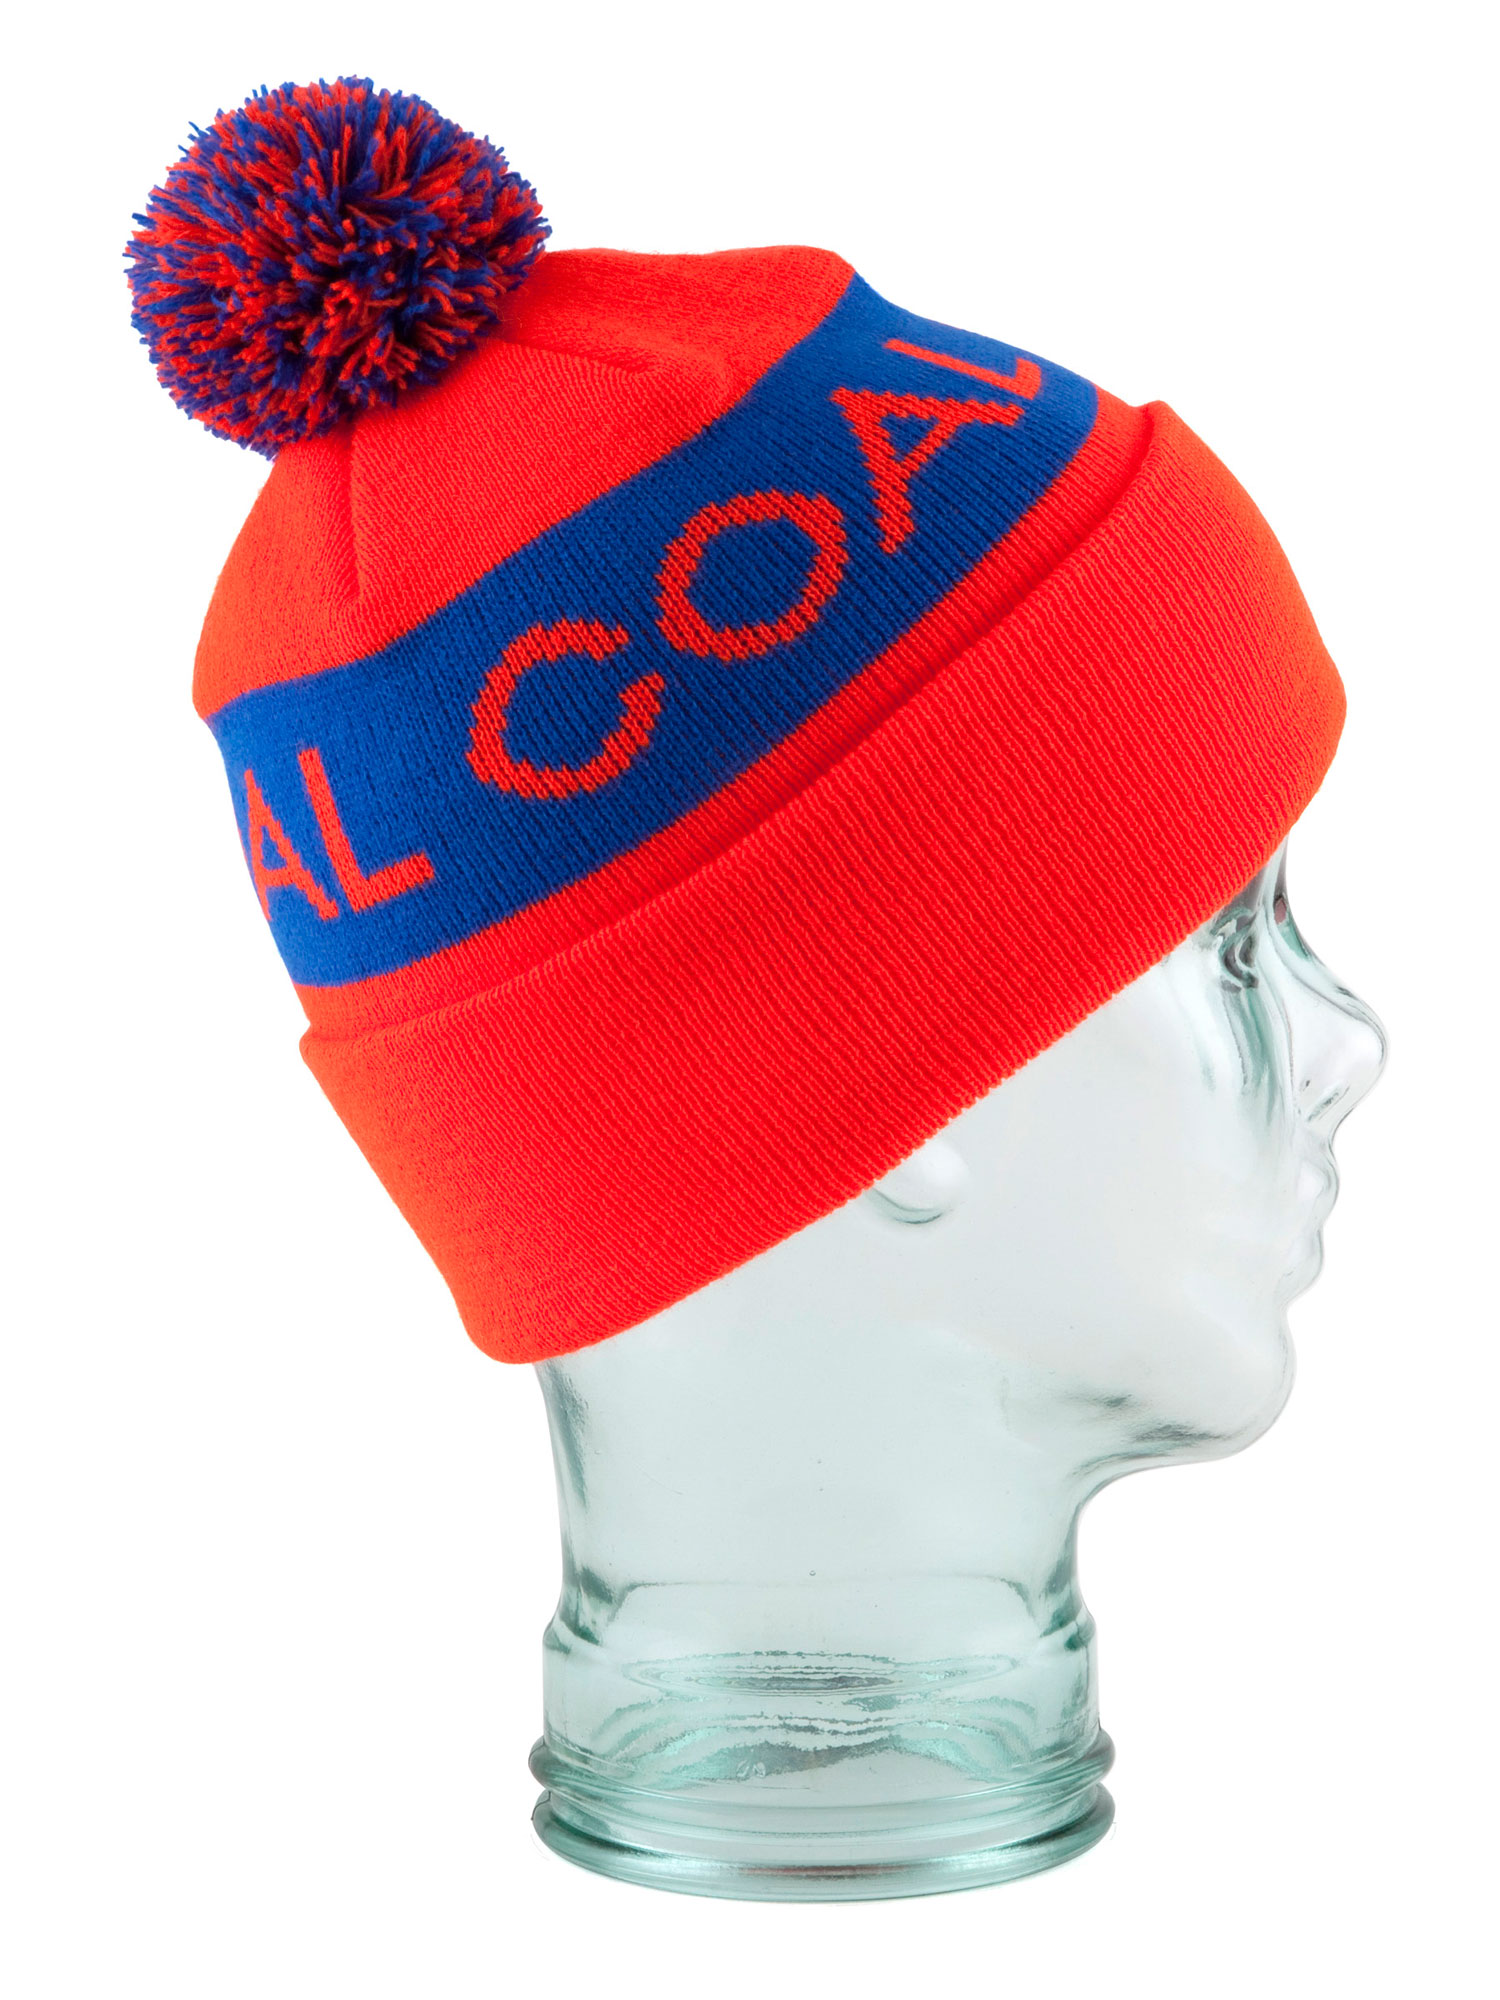 A classic fine-knit beanie that can be worn unfolded for a modern style or folded up for a classic look and fit. Updated for Fall 12 with multi-colored pom pom. Fine acrylic. - $12.95